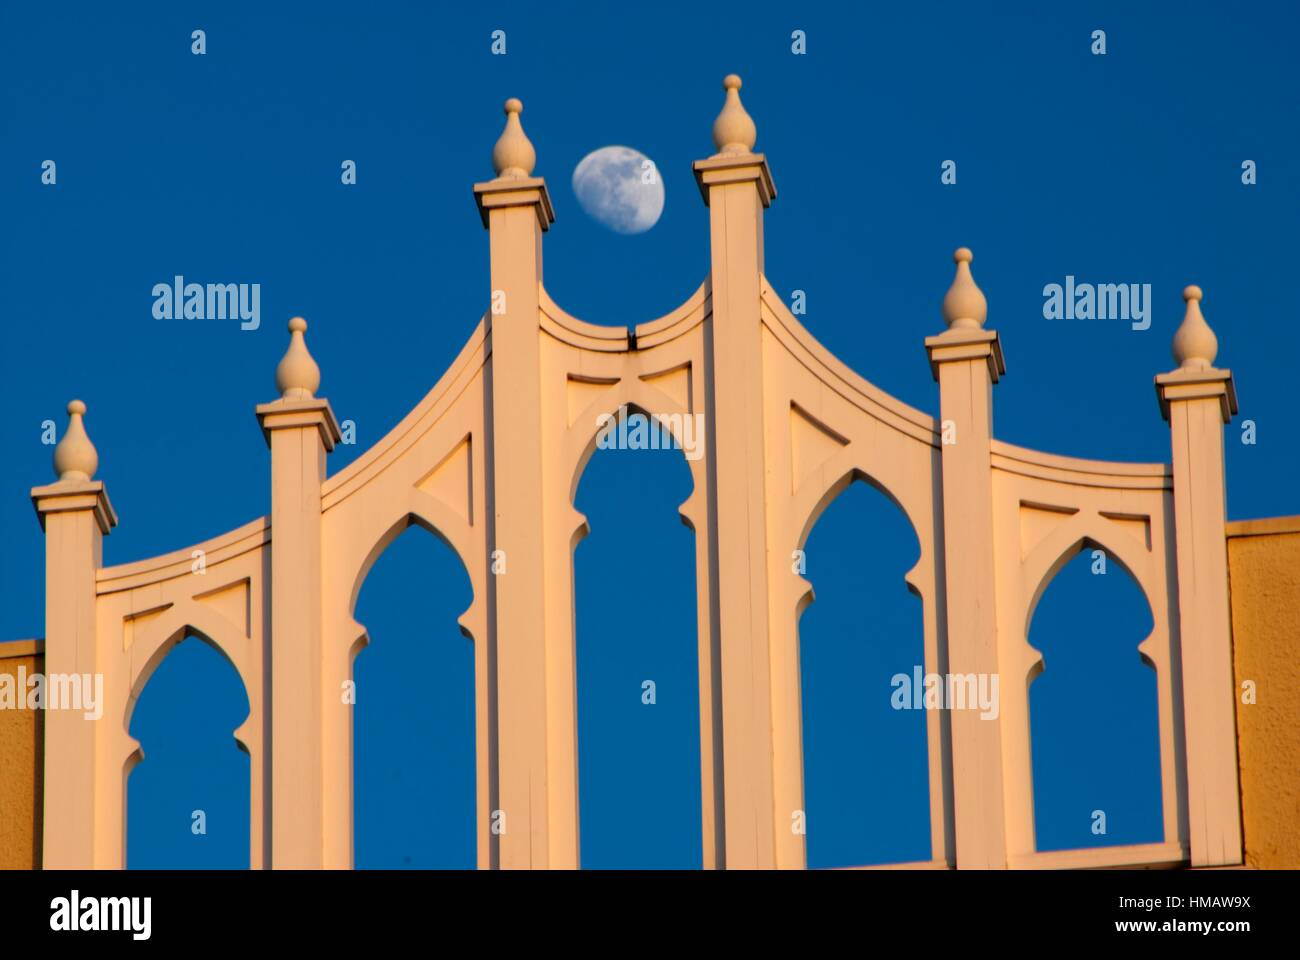 Elsinore Theater facade with moon, Salem, Oregon. - Stock Image